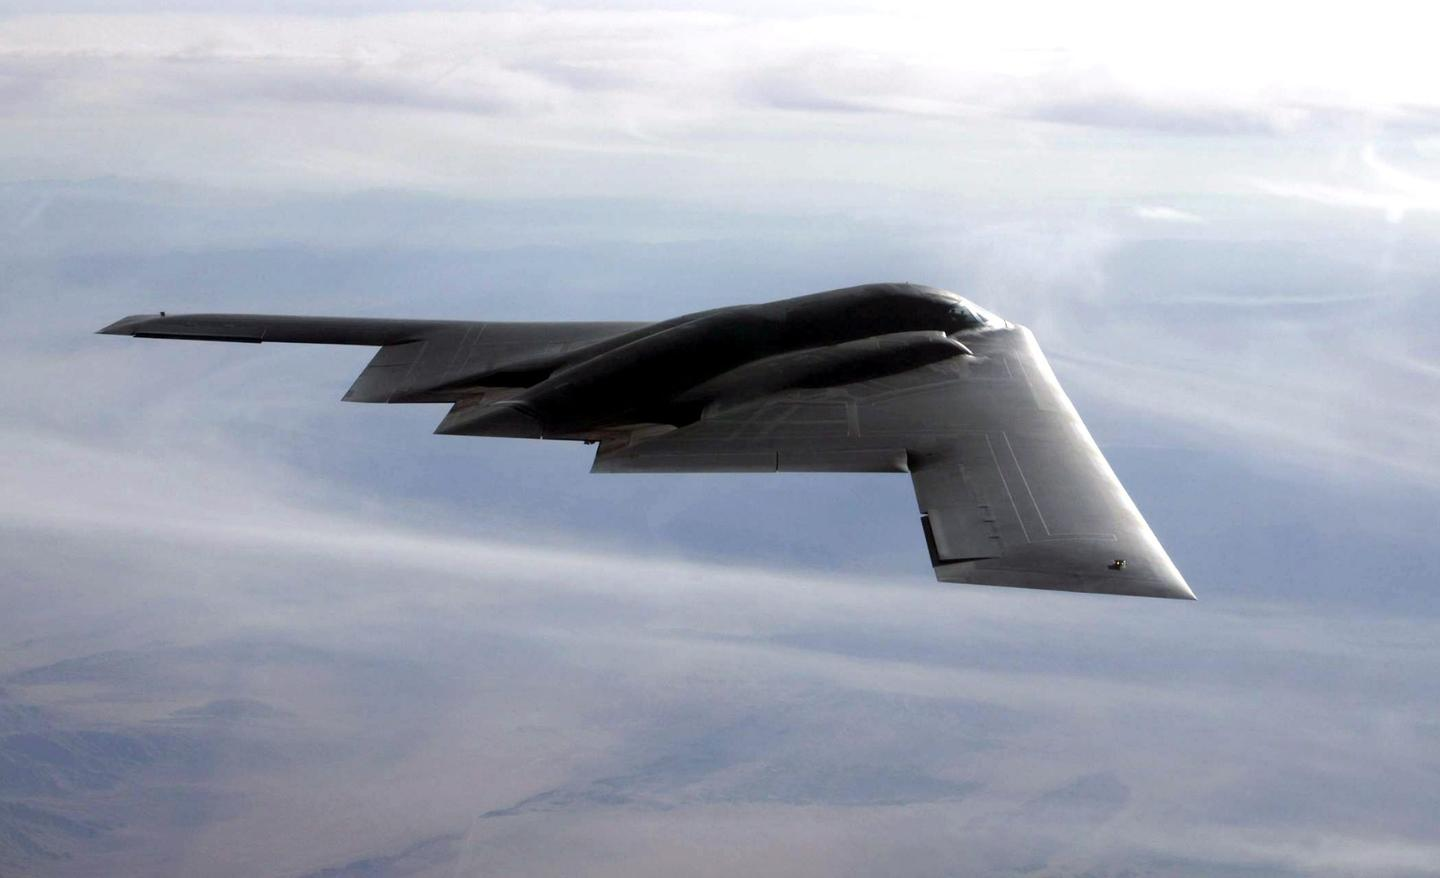 The new quantum radar would negate the near-invisibility of stealth aircraft like the B-2 Spirit bomber